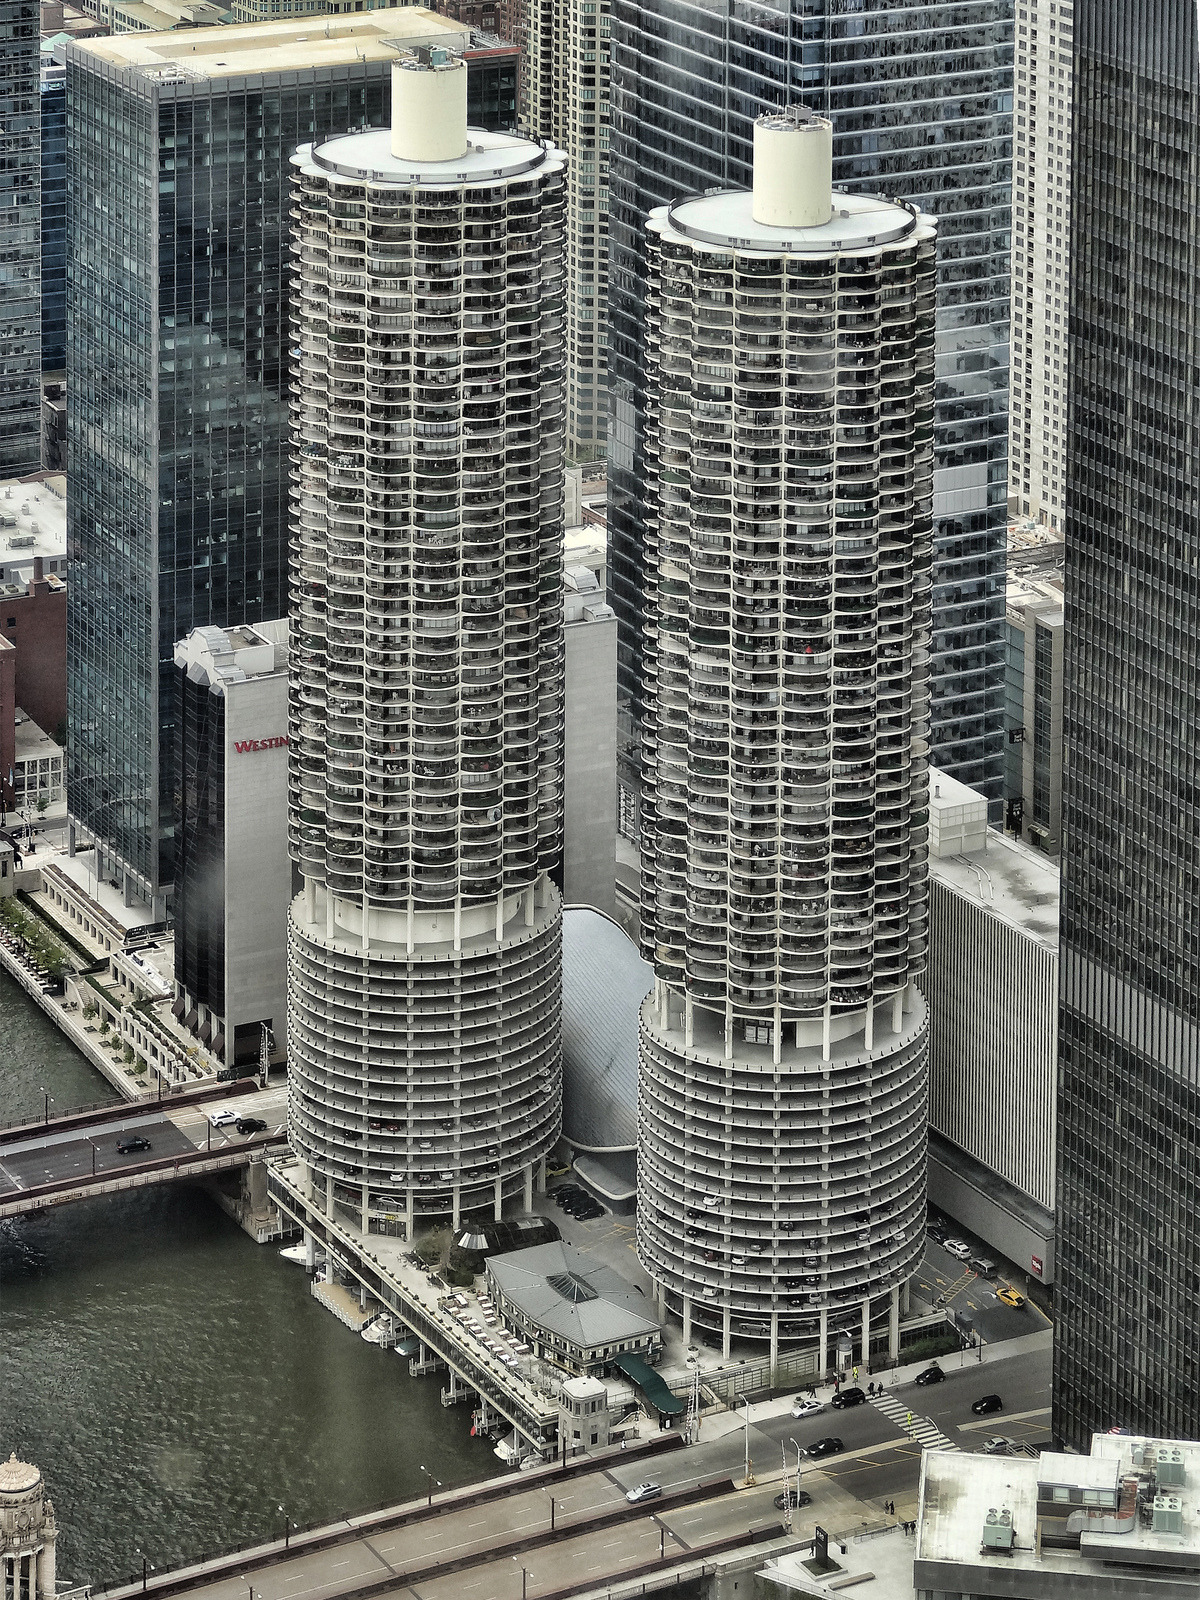 hiromitsu:  Marina City by Atelier Teee on Flickr.